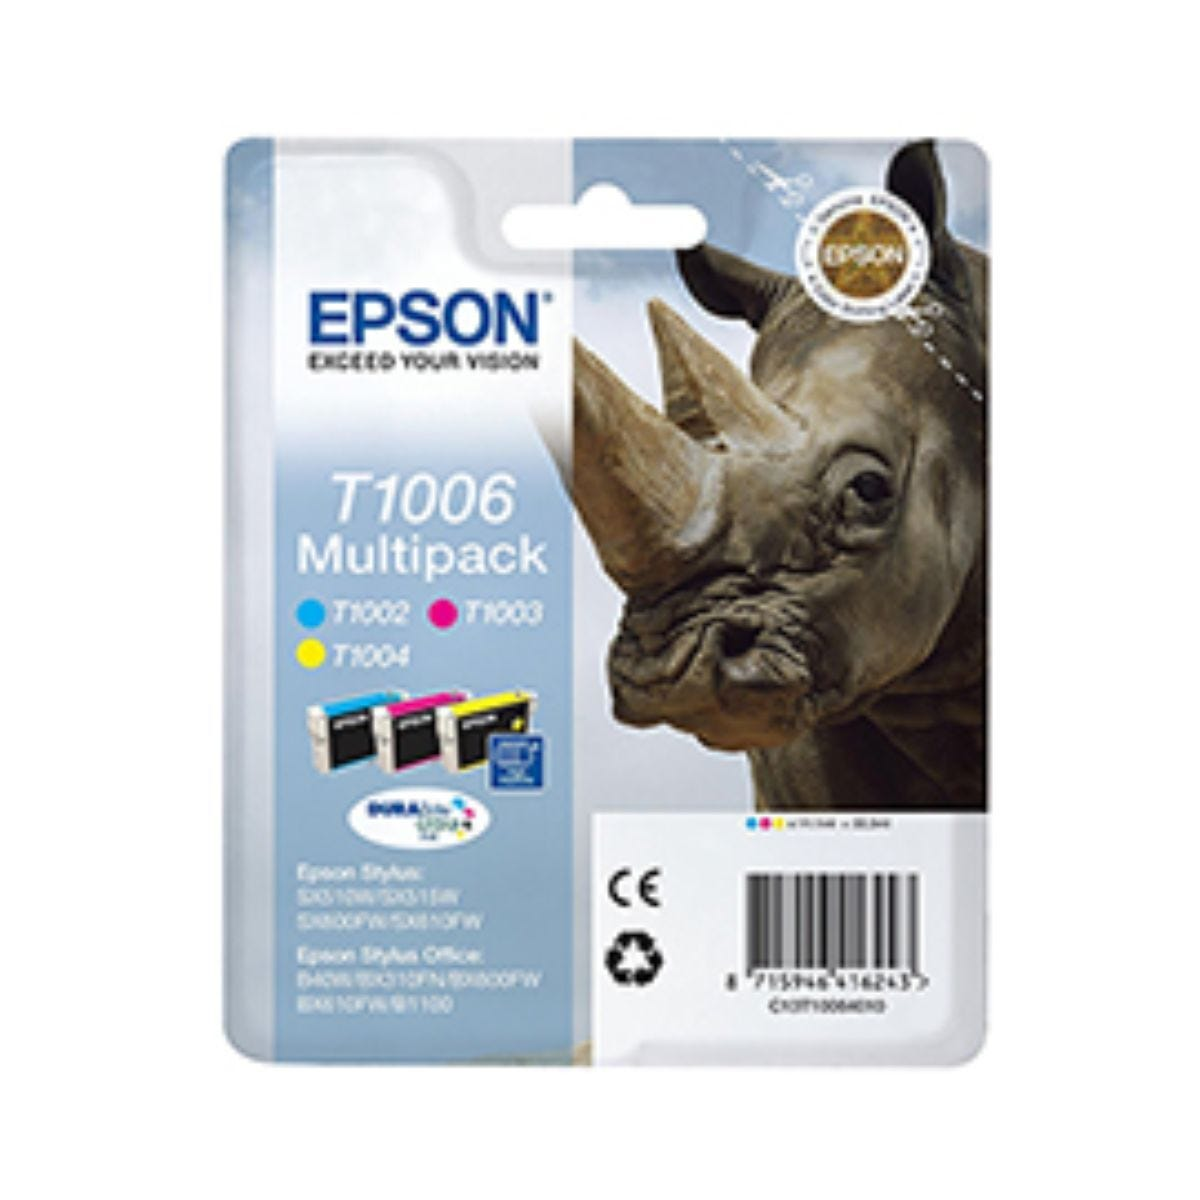 Epson T1006 High Capacity 3 Pack Ink Cyan Magenta and Yellow